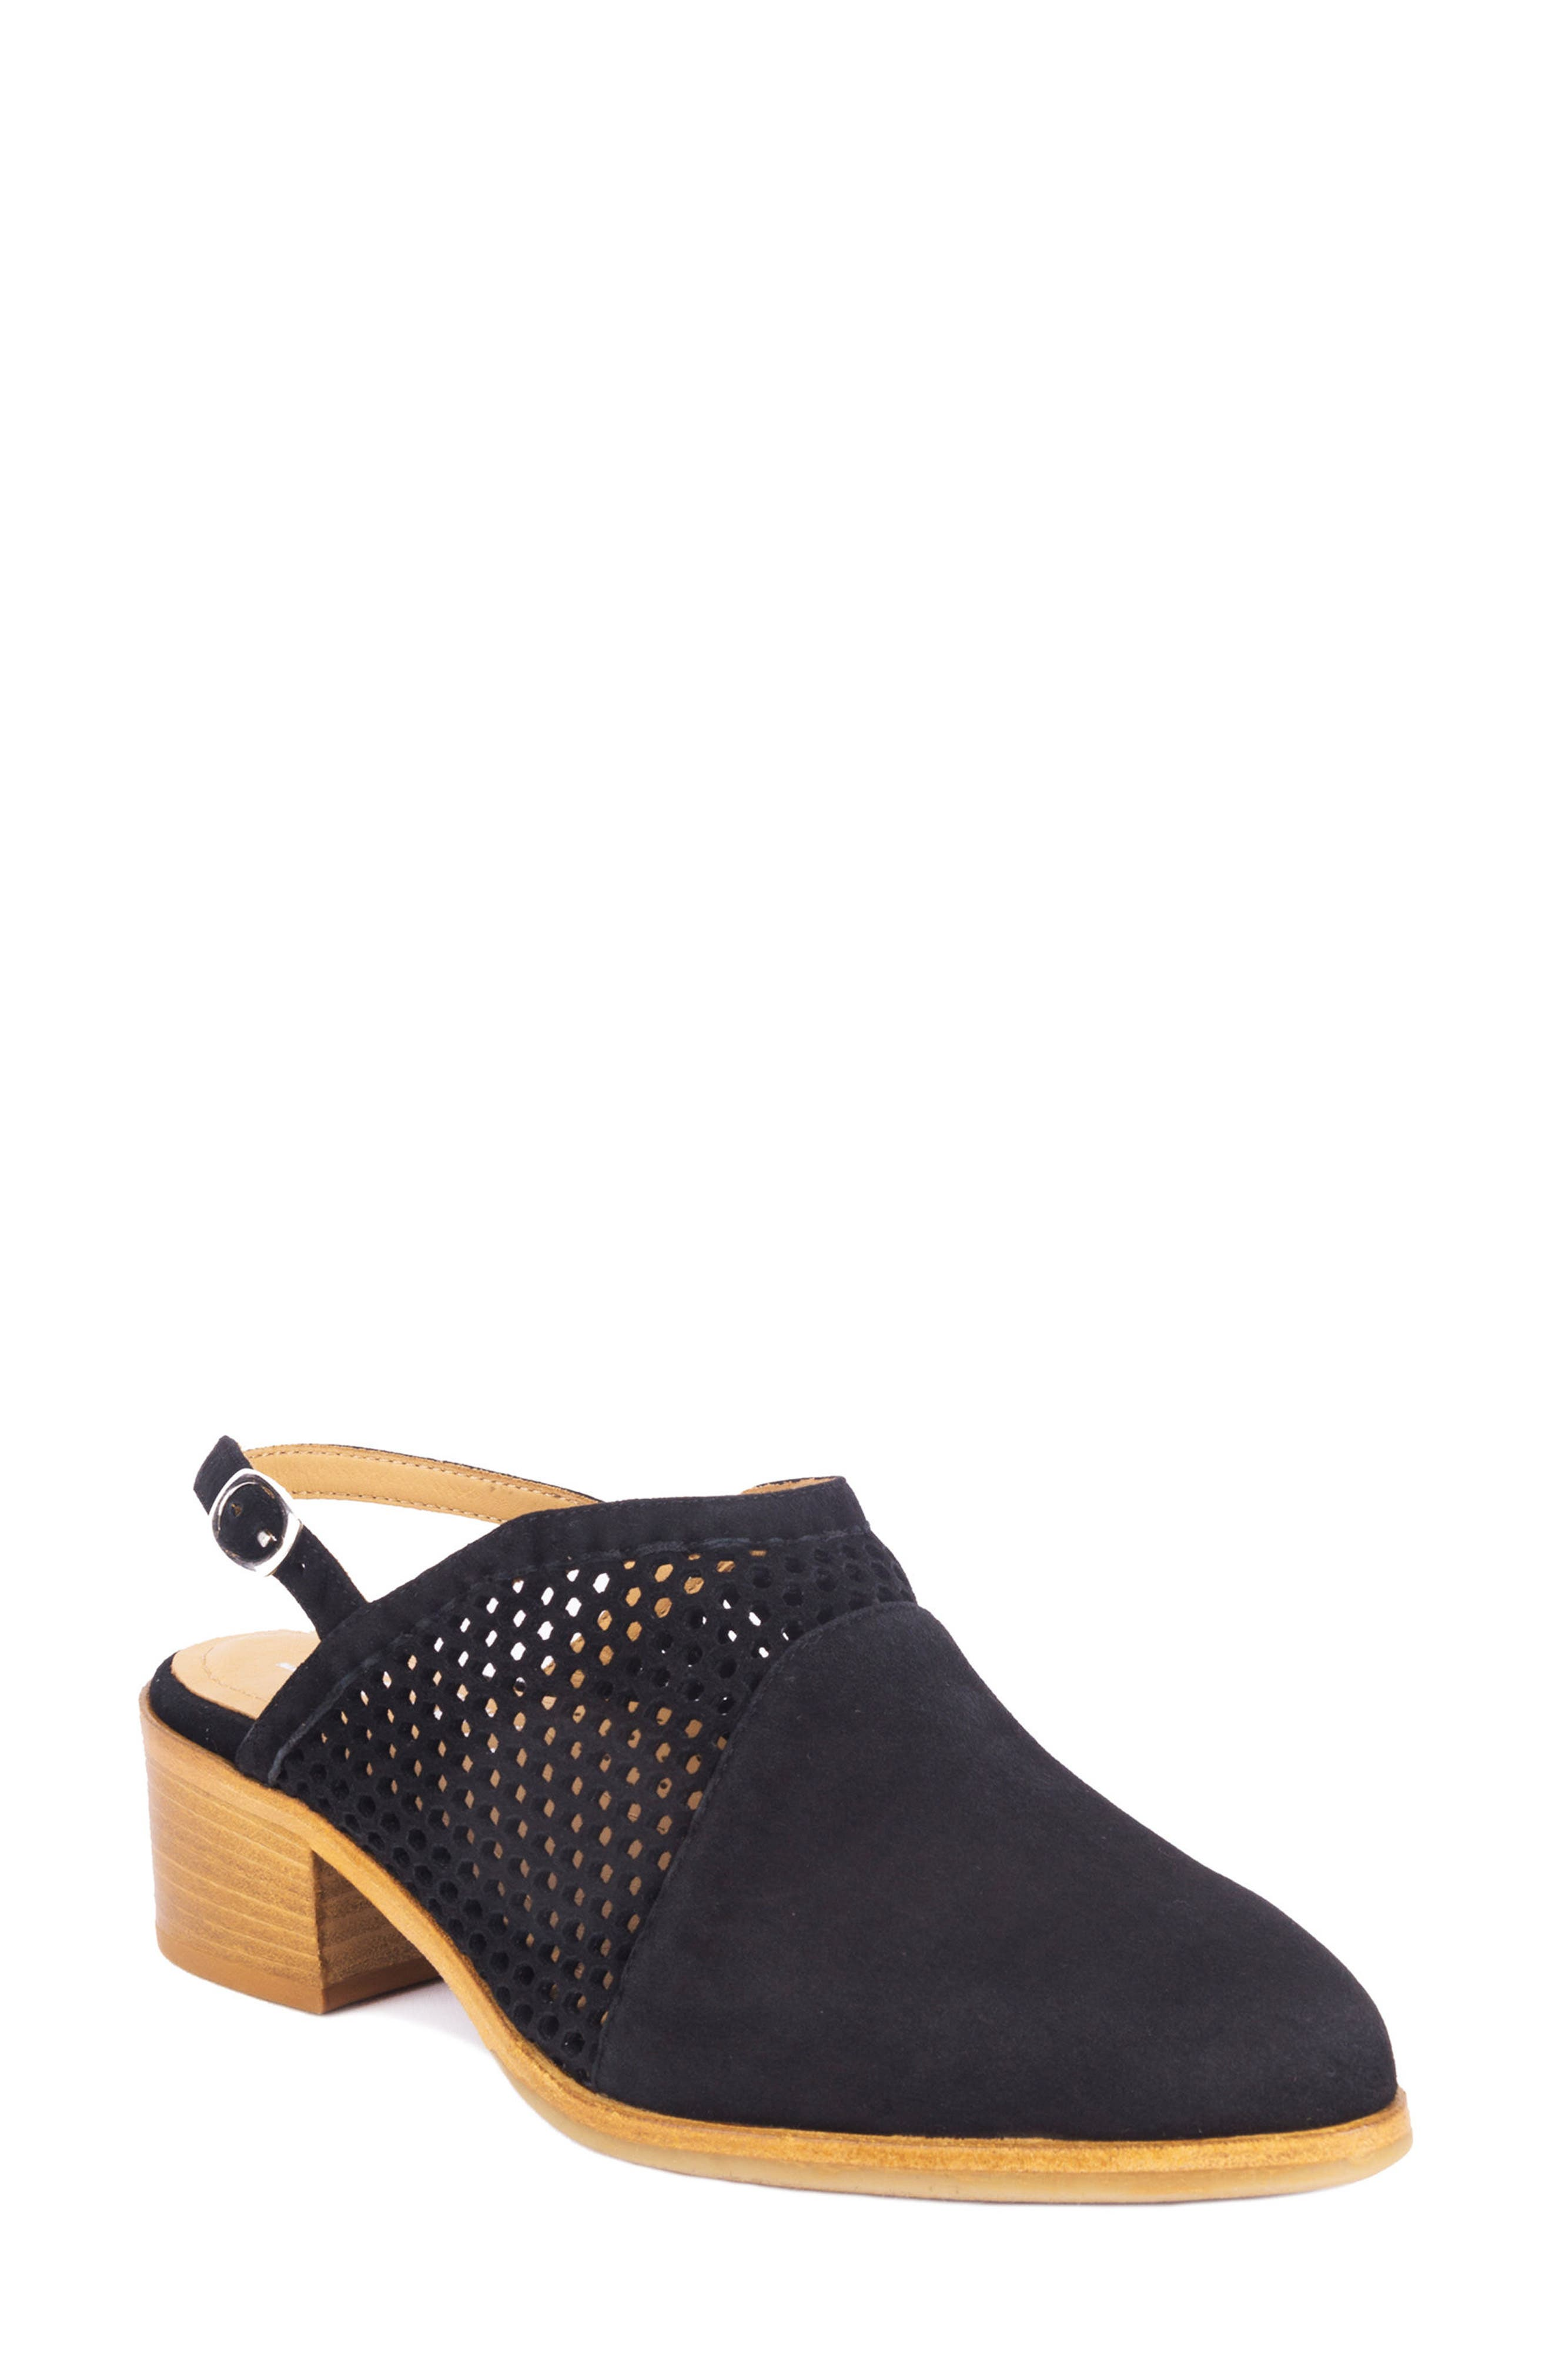 Toselli Water Resistant Slingback Bootie,                         Main,                         color, NERO